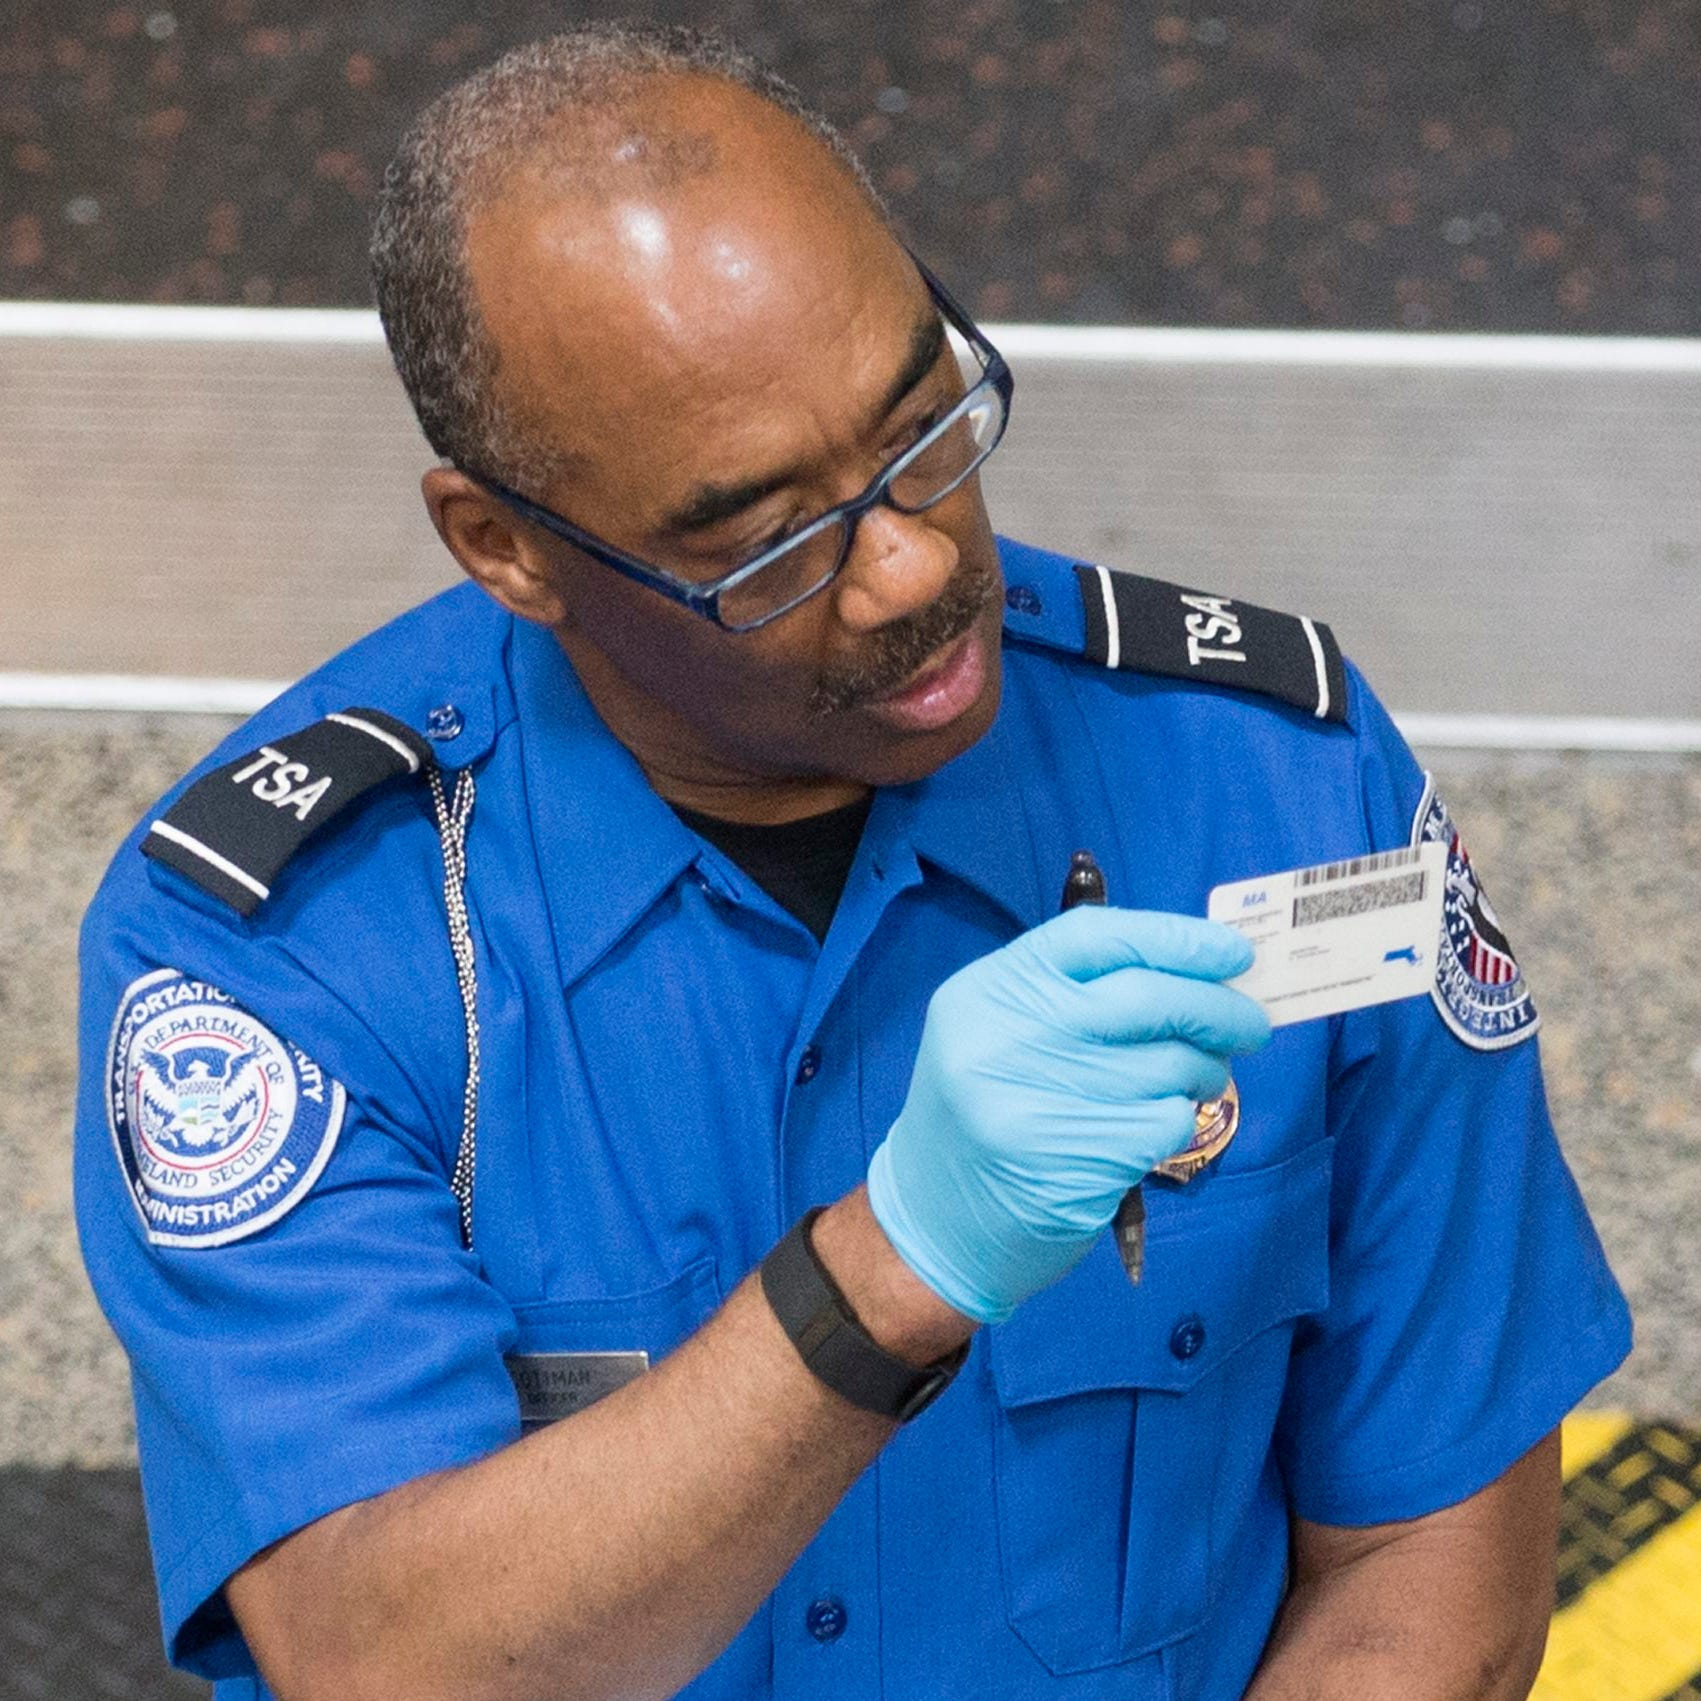 A TSA employee inspects travelers' identification at Reagan National Airport on June 30, 2016.